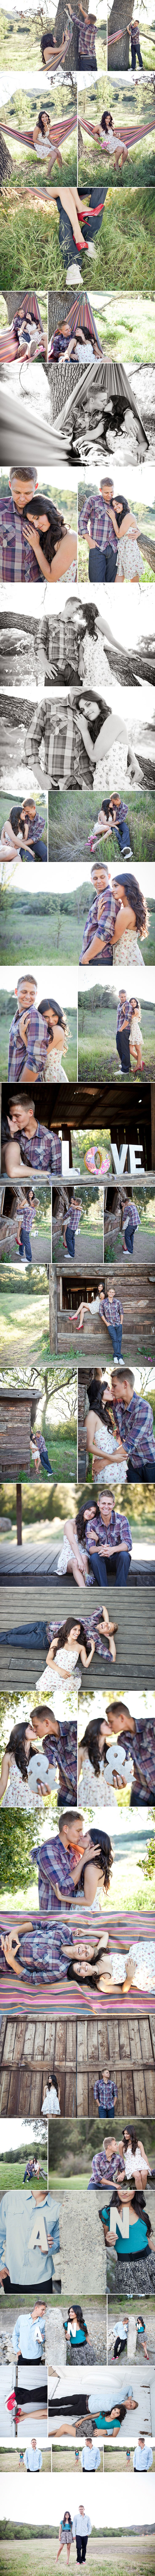 great ideas for engagement pics!